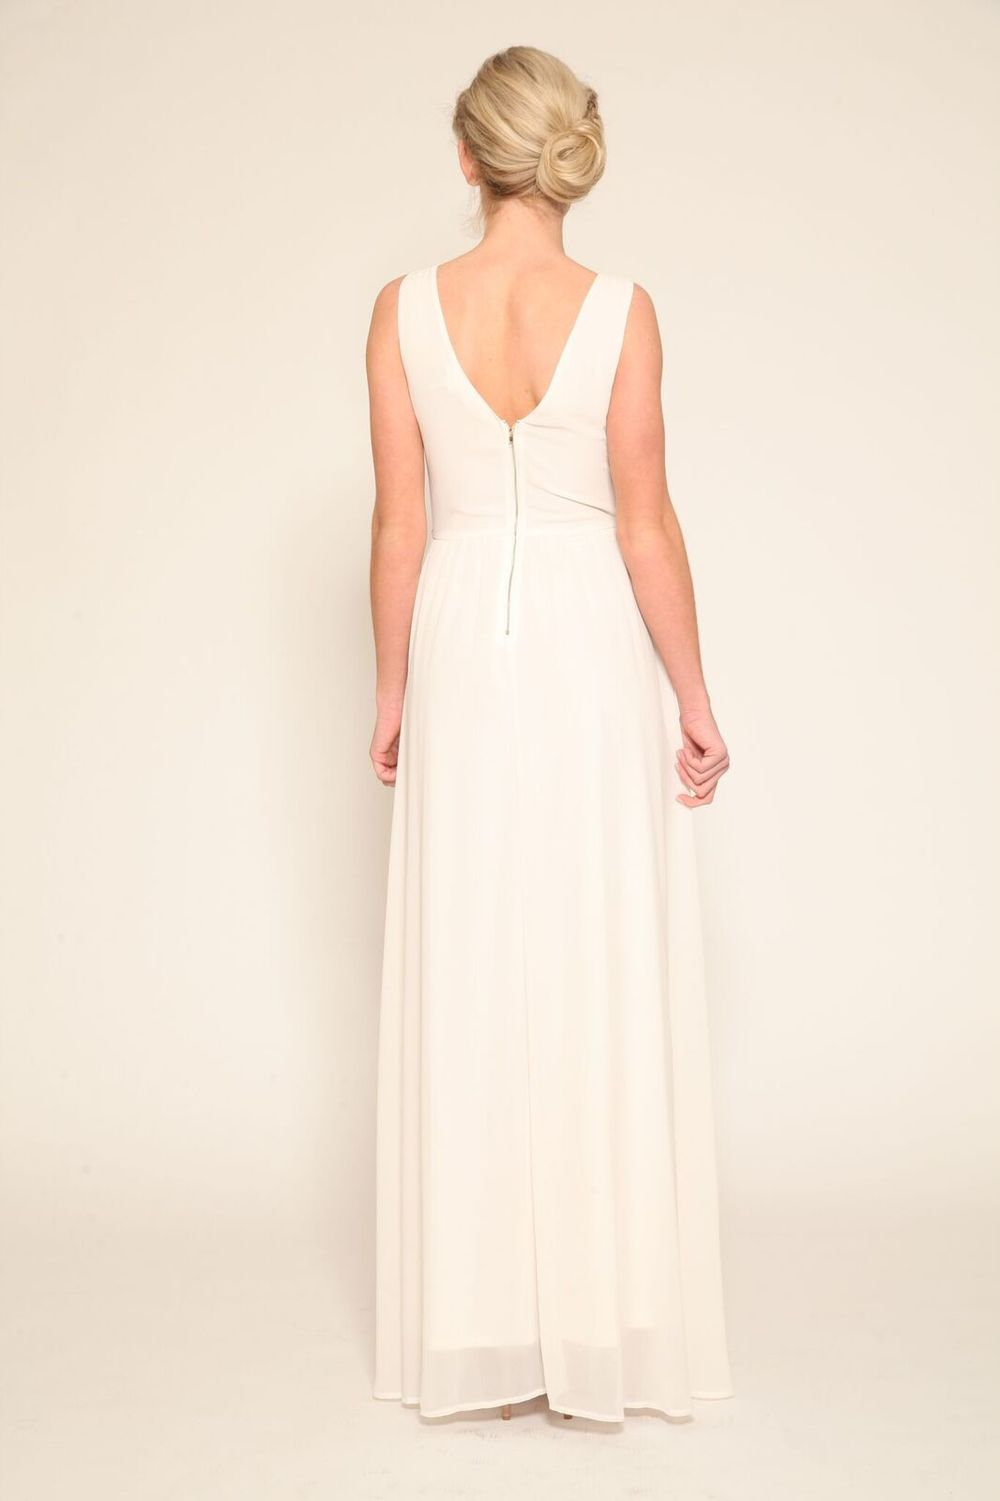 Ivory Chiffon Gown With Gold Beading Detail $89